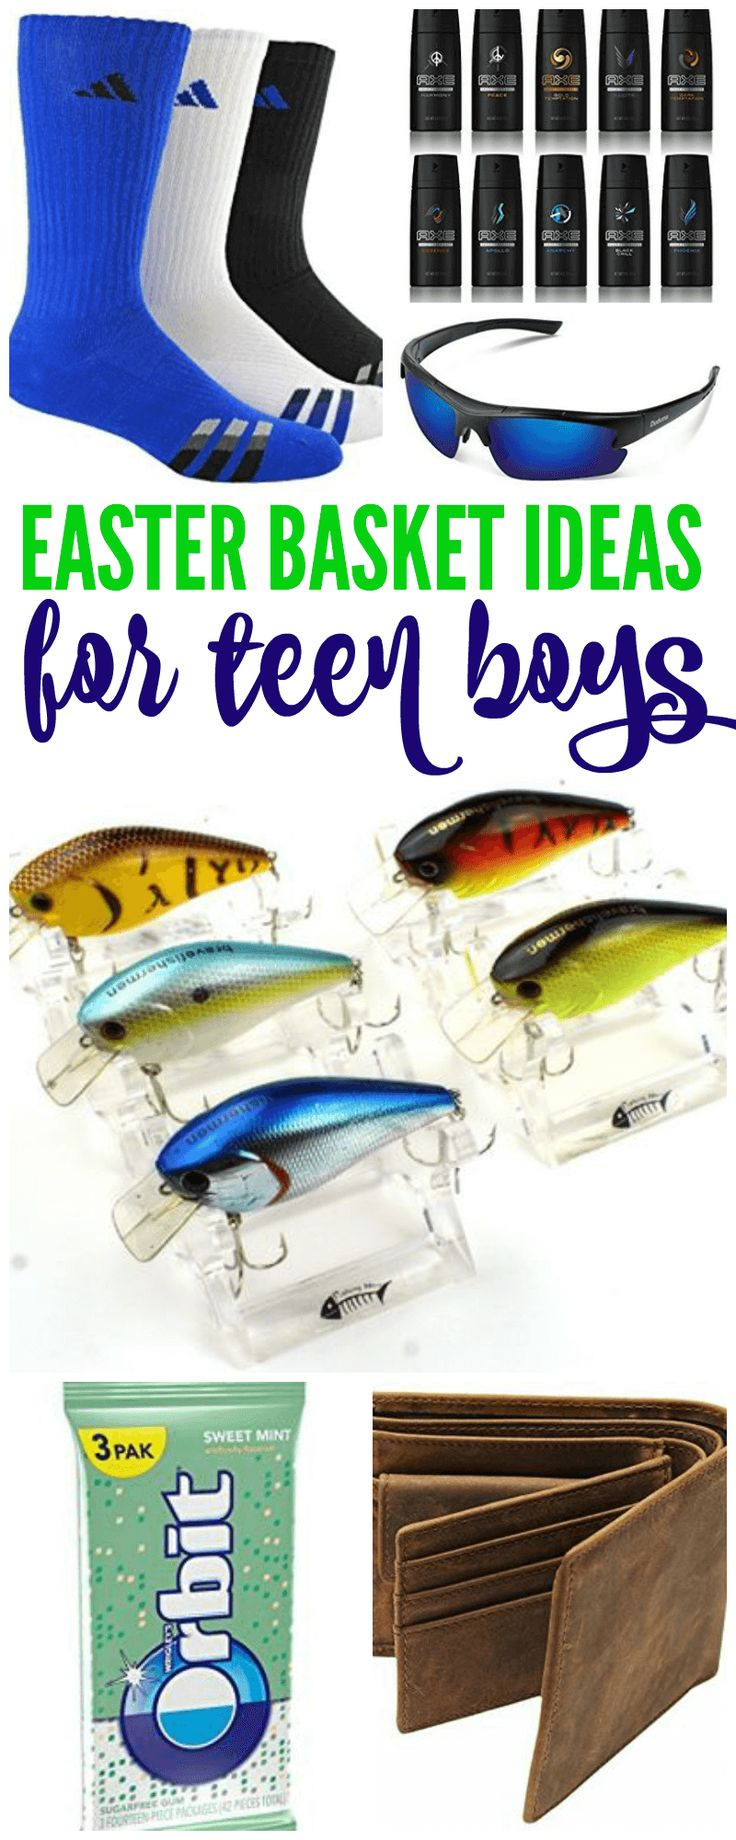 Teen Boys Easter Baskets! Things that your Teen Boys will love to get for Easter! Who says older kids can't have fun too!